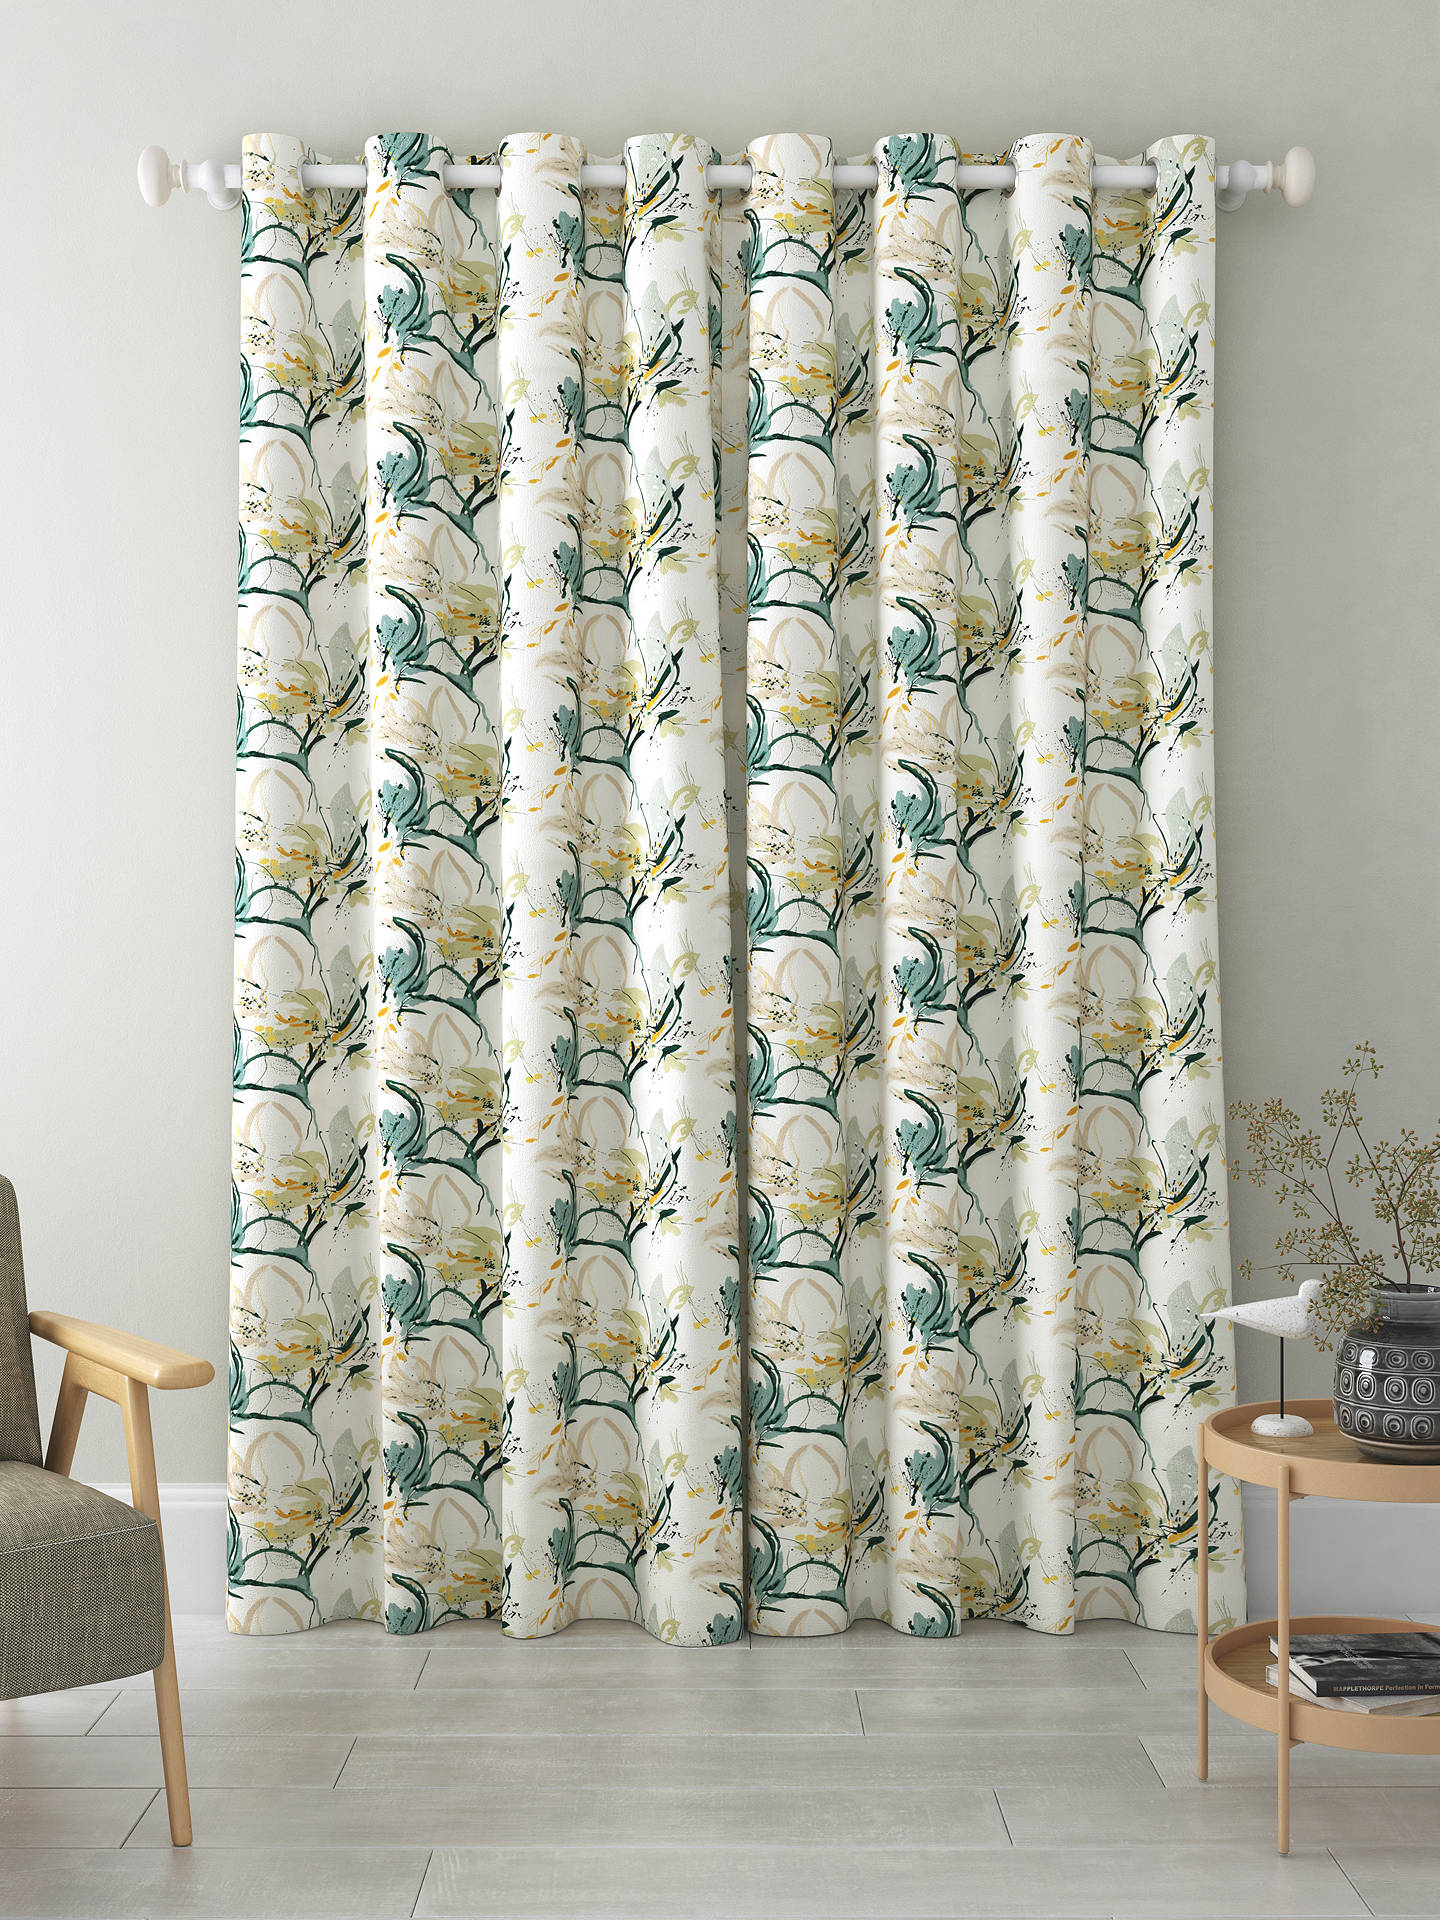 Buy Villa Nova Artesia Pair Blackout Lined Eylet Curtains, Eden, W167 x Drop 137cm Online at johnlewis.com